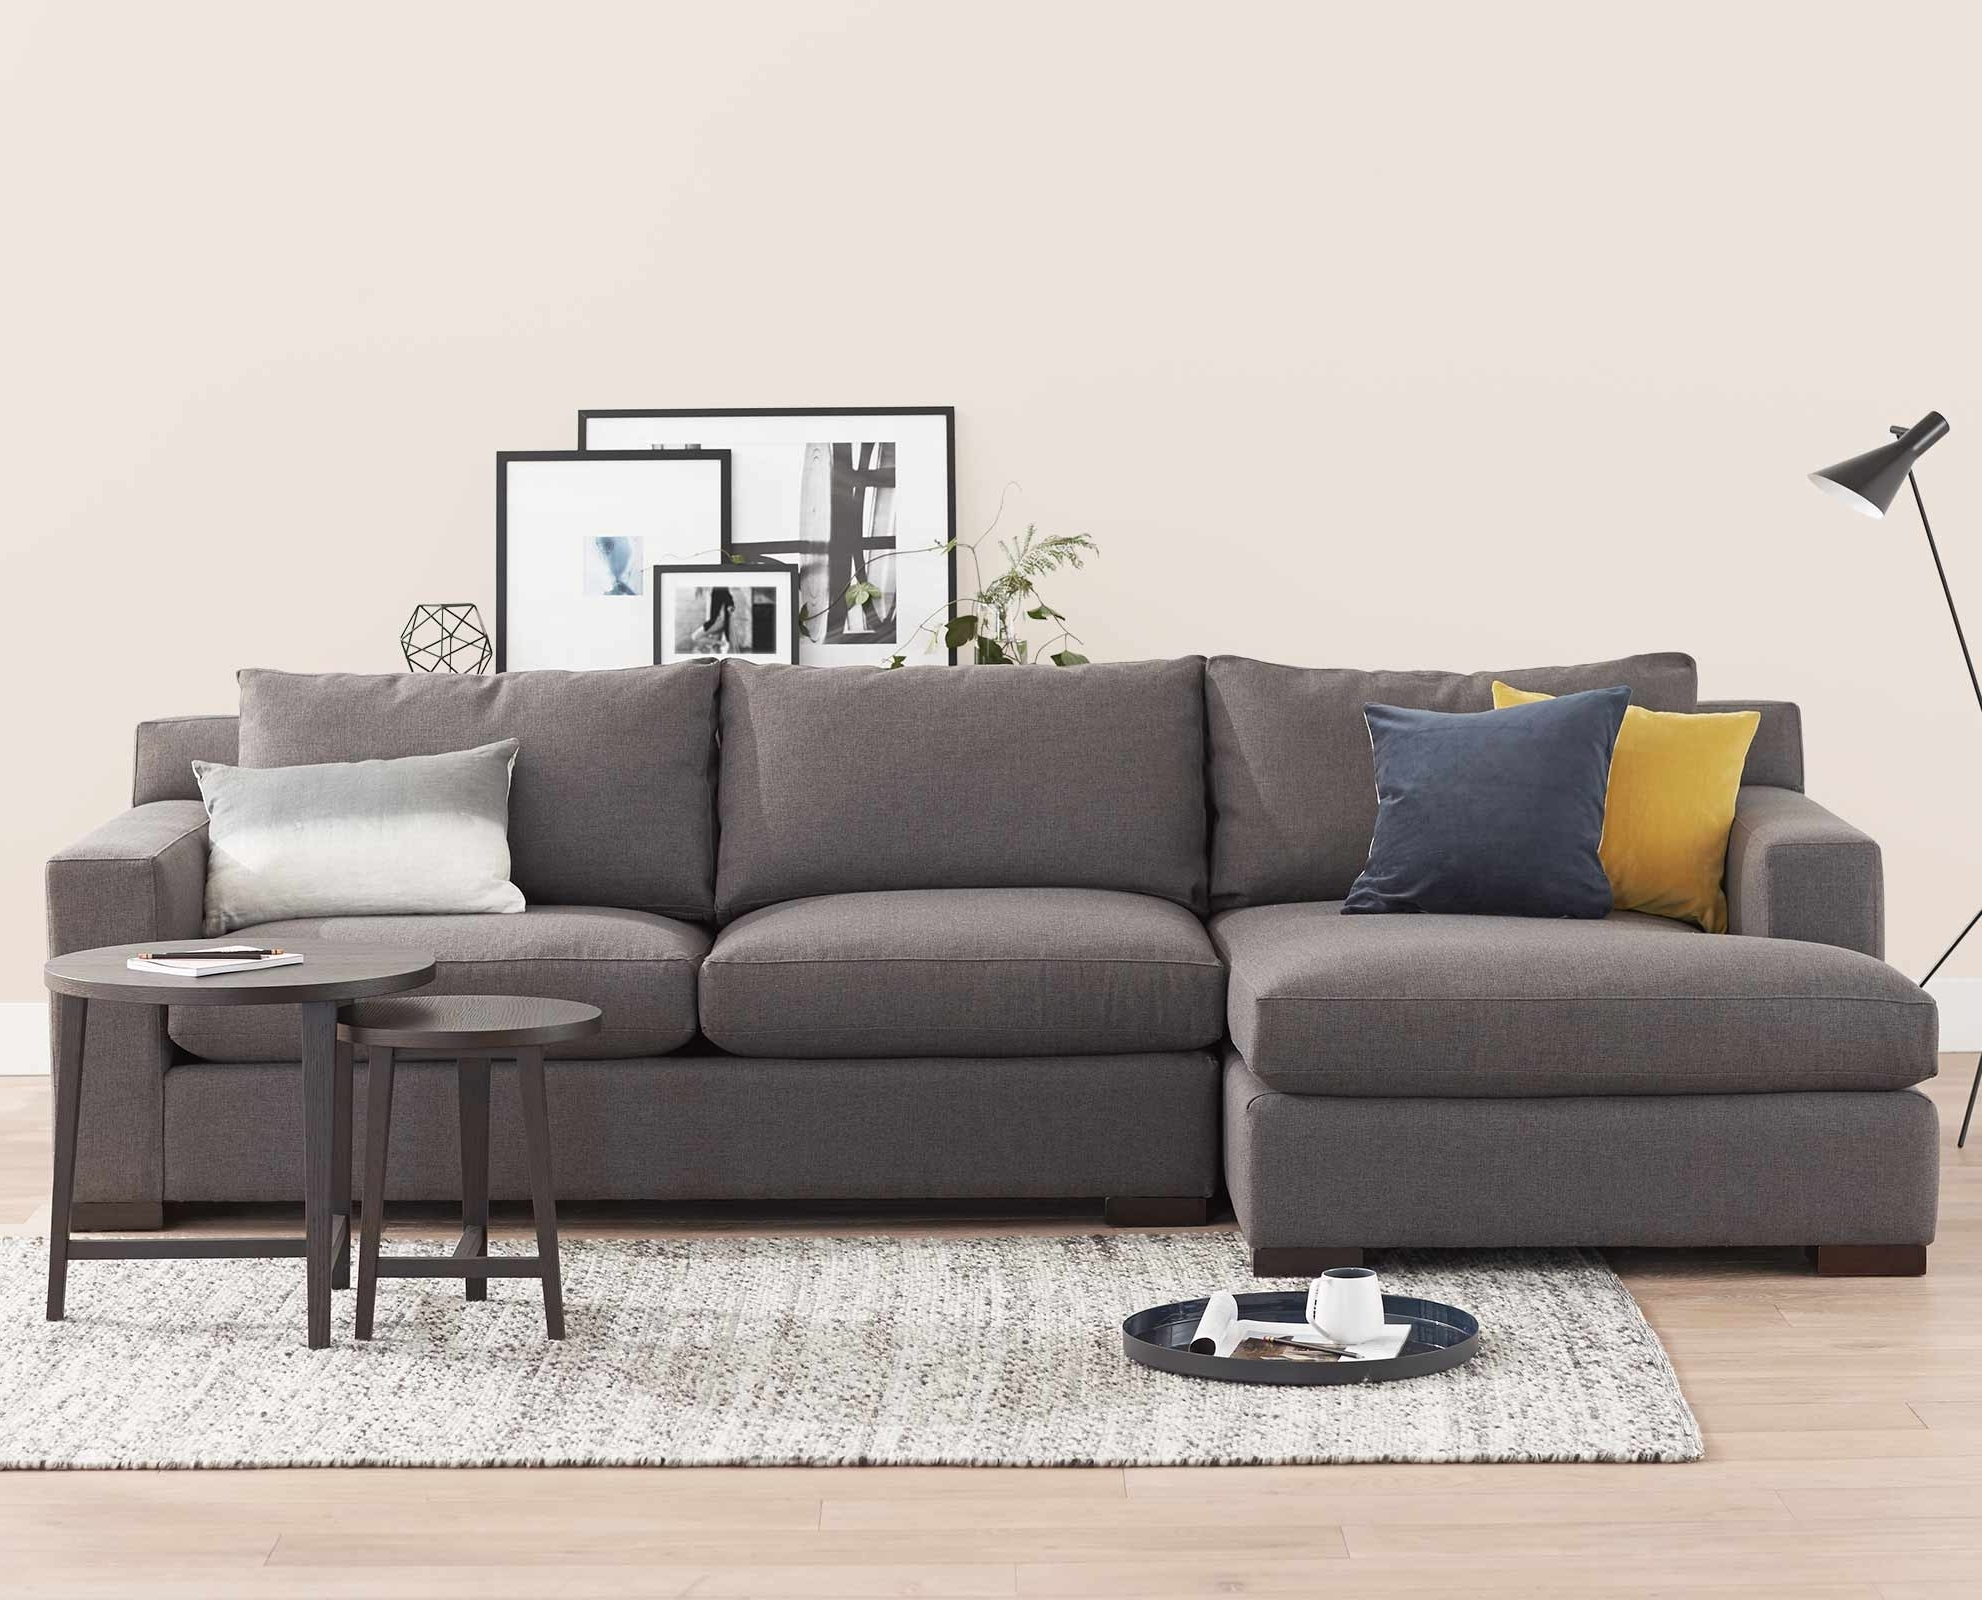 Dania Sectional Sofas Throughout Favorite Scandinavian Designs – Always Cozy And Always Classic, The Aida (View 5 of 20)